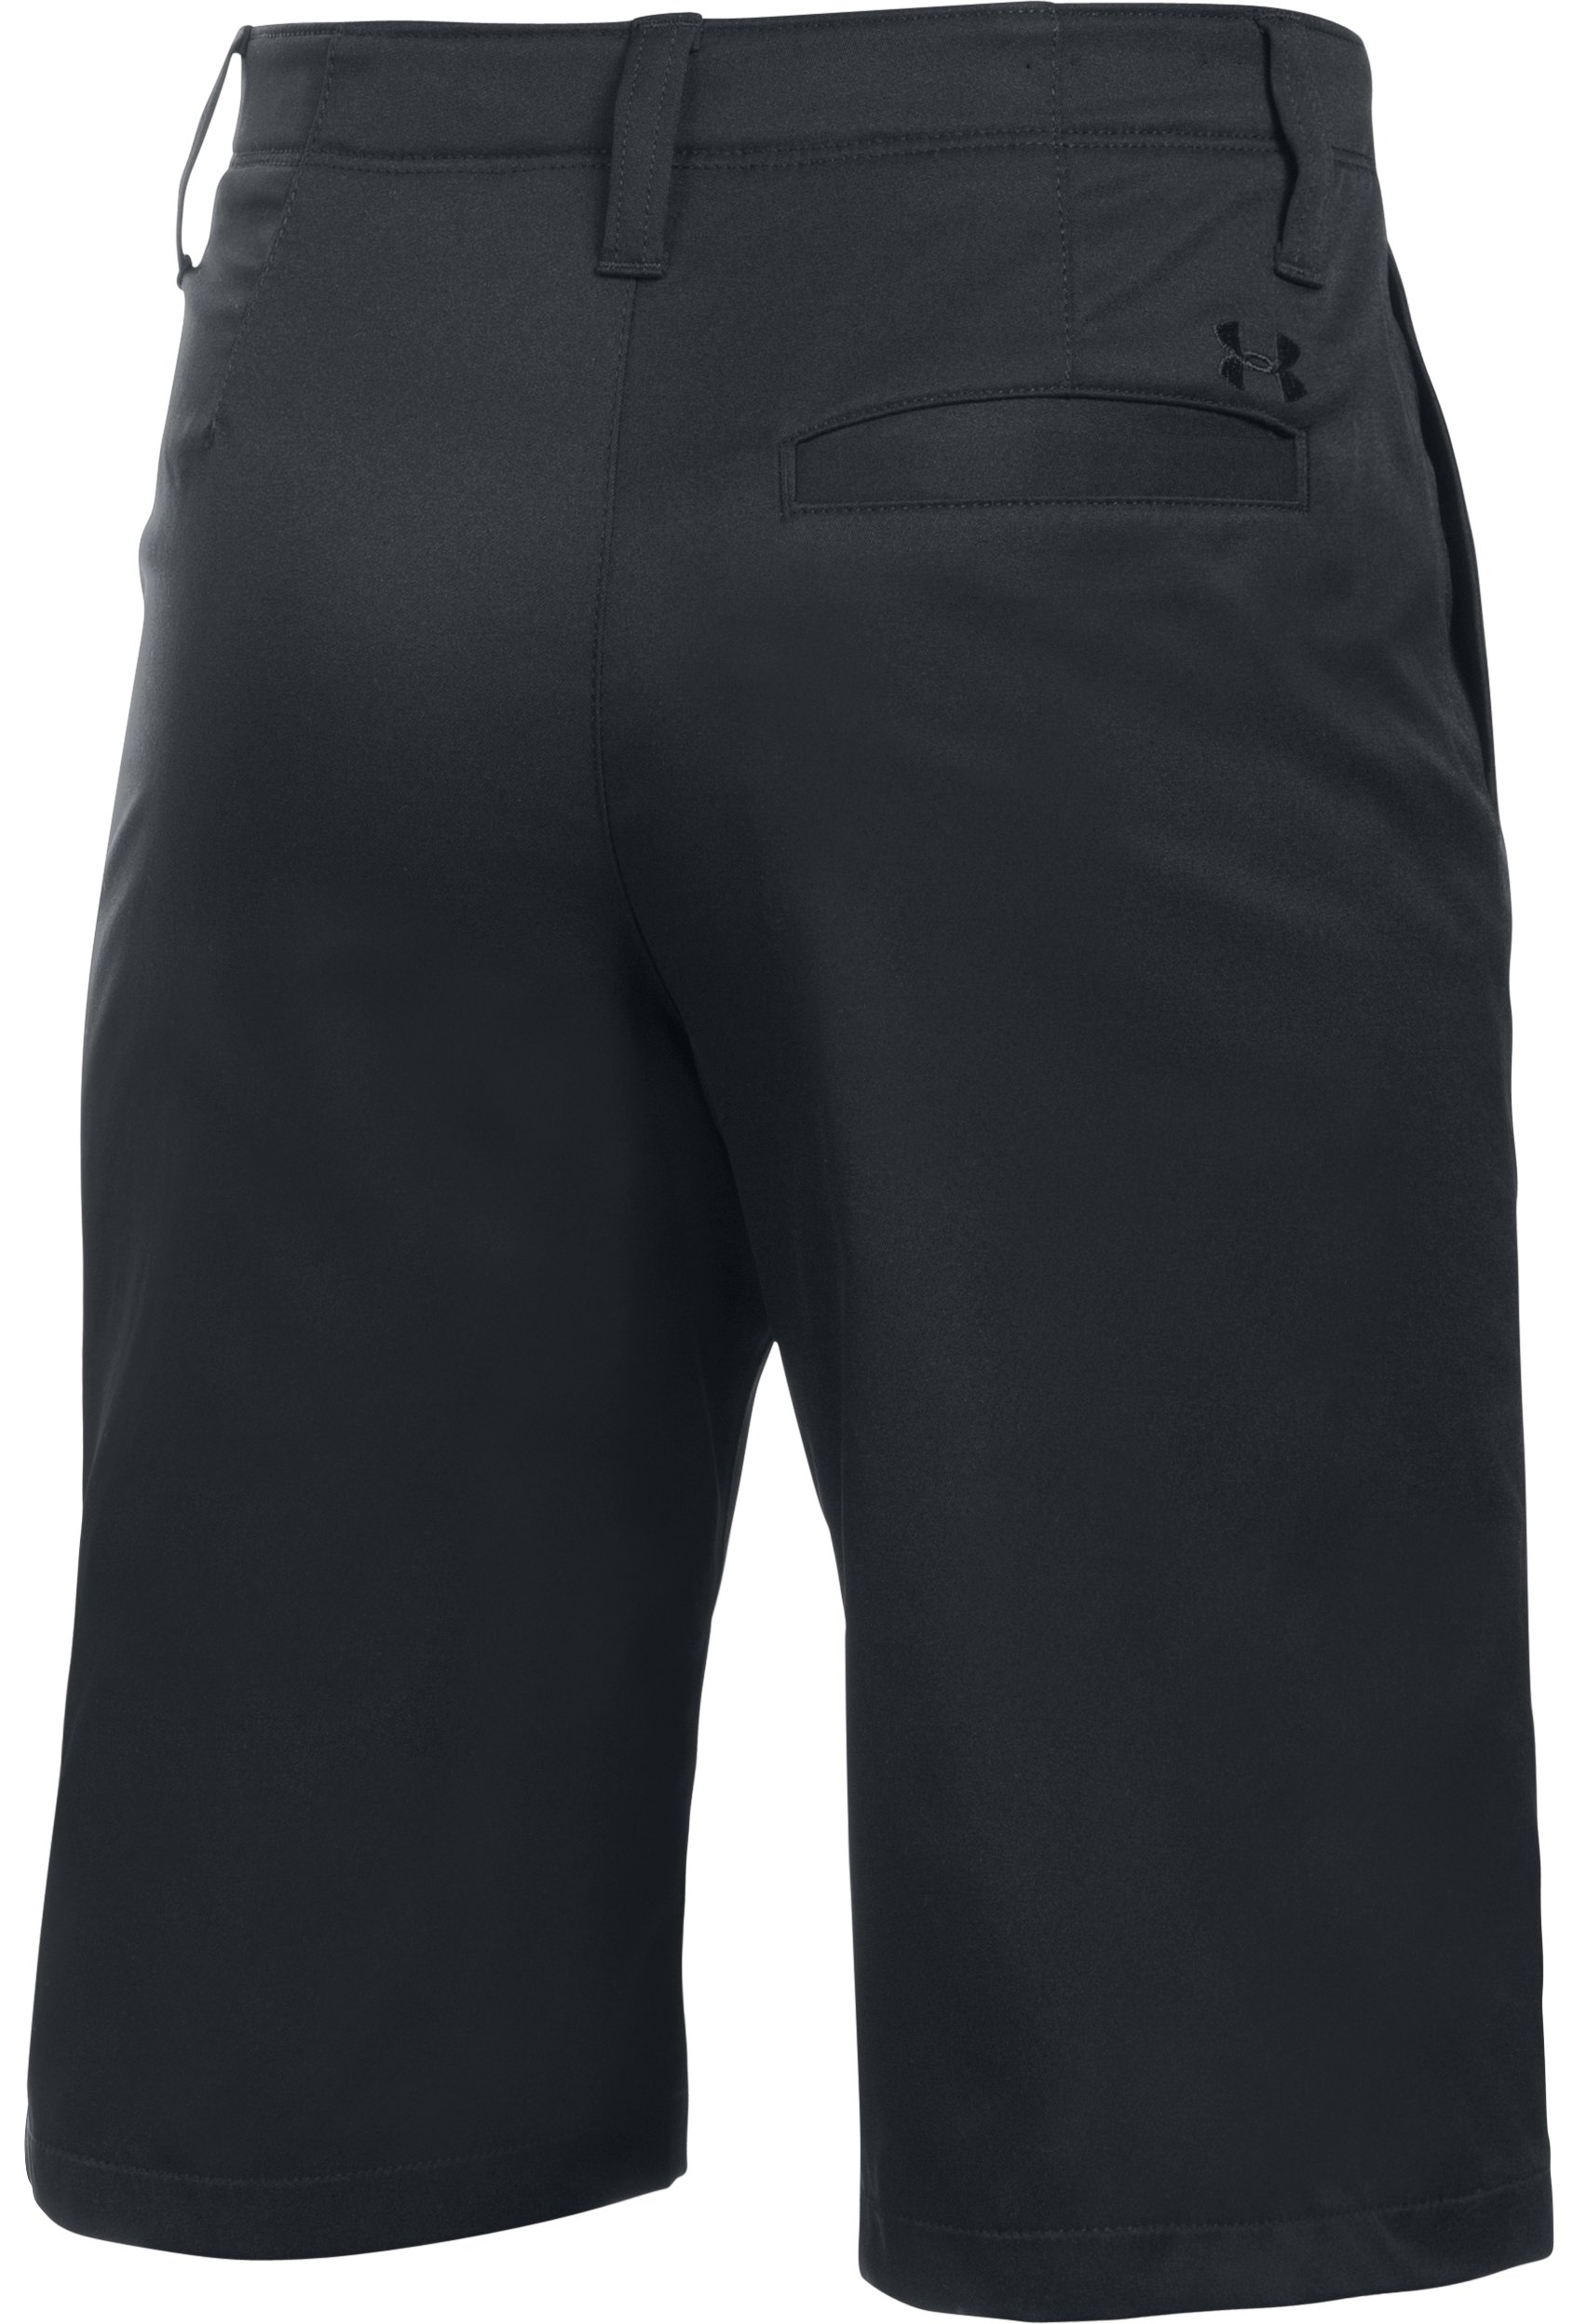 Boys' UA Match Play Shorts, Black , undefined